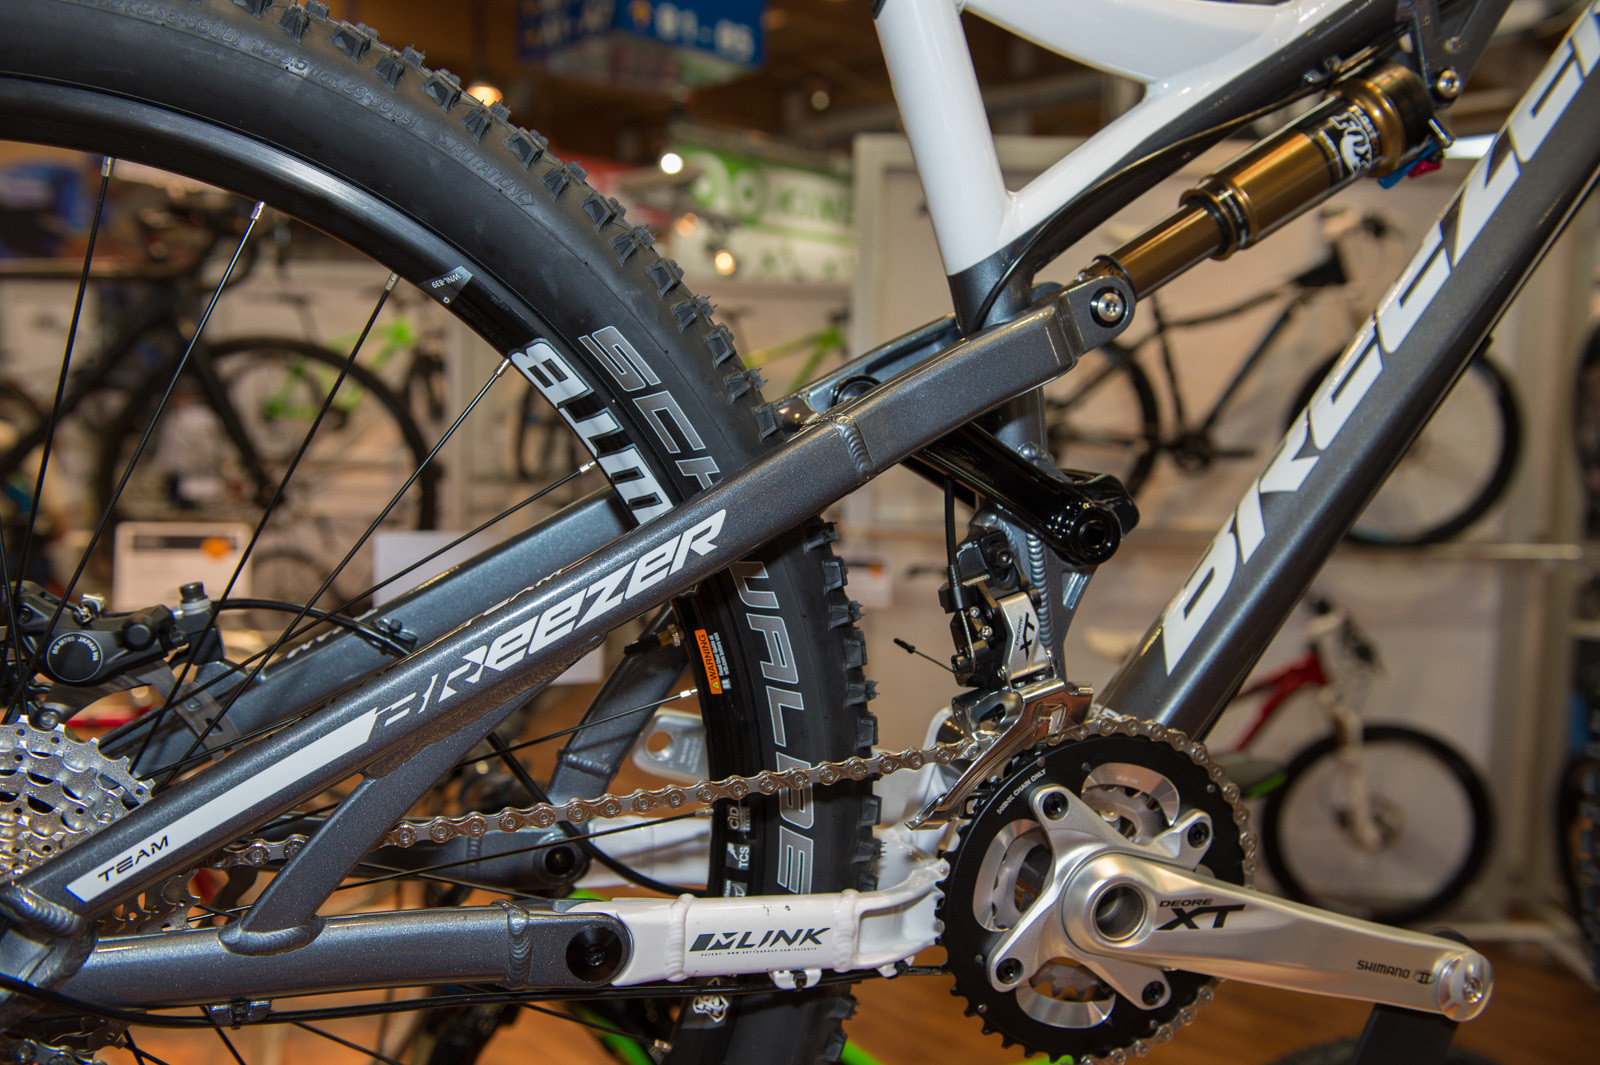 2014 Breezer Repack - 2014 Trail, All-Mountain & Enduro Bikes at Eurobike 2013 - Mountain Biking Pictures - Vital MTB